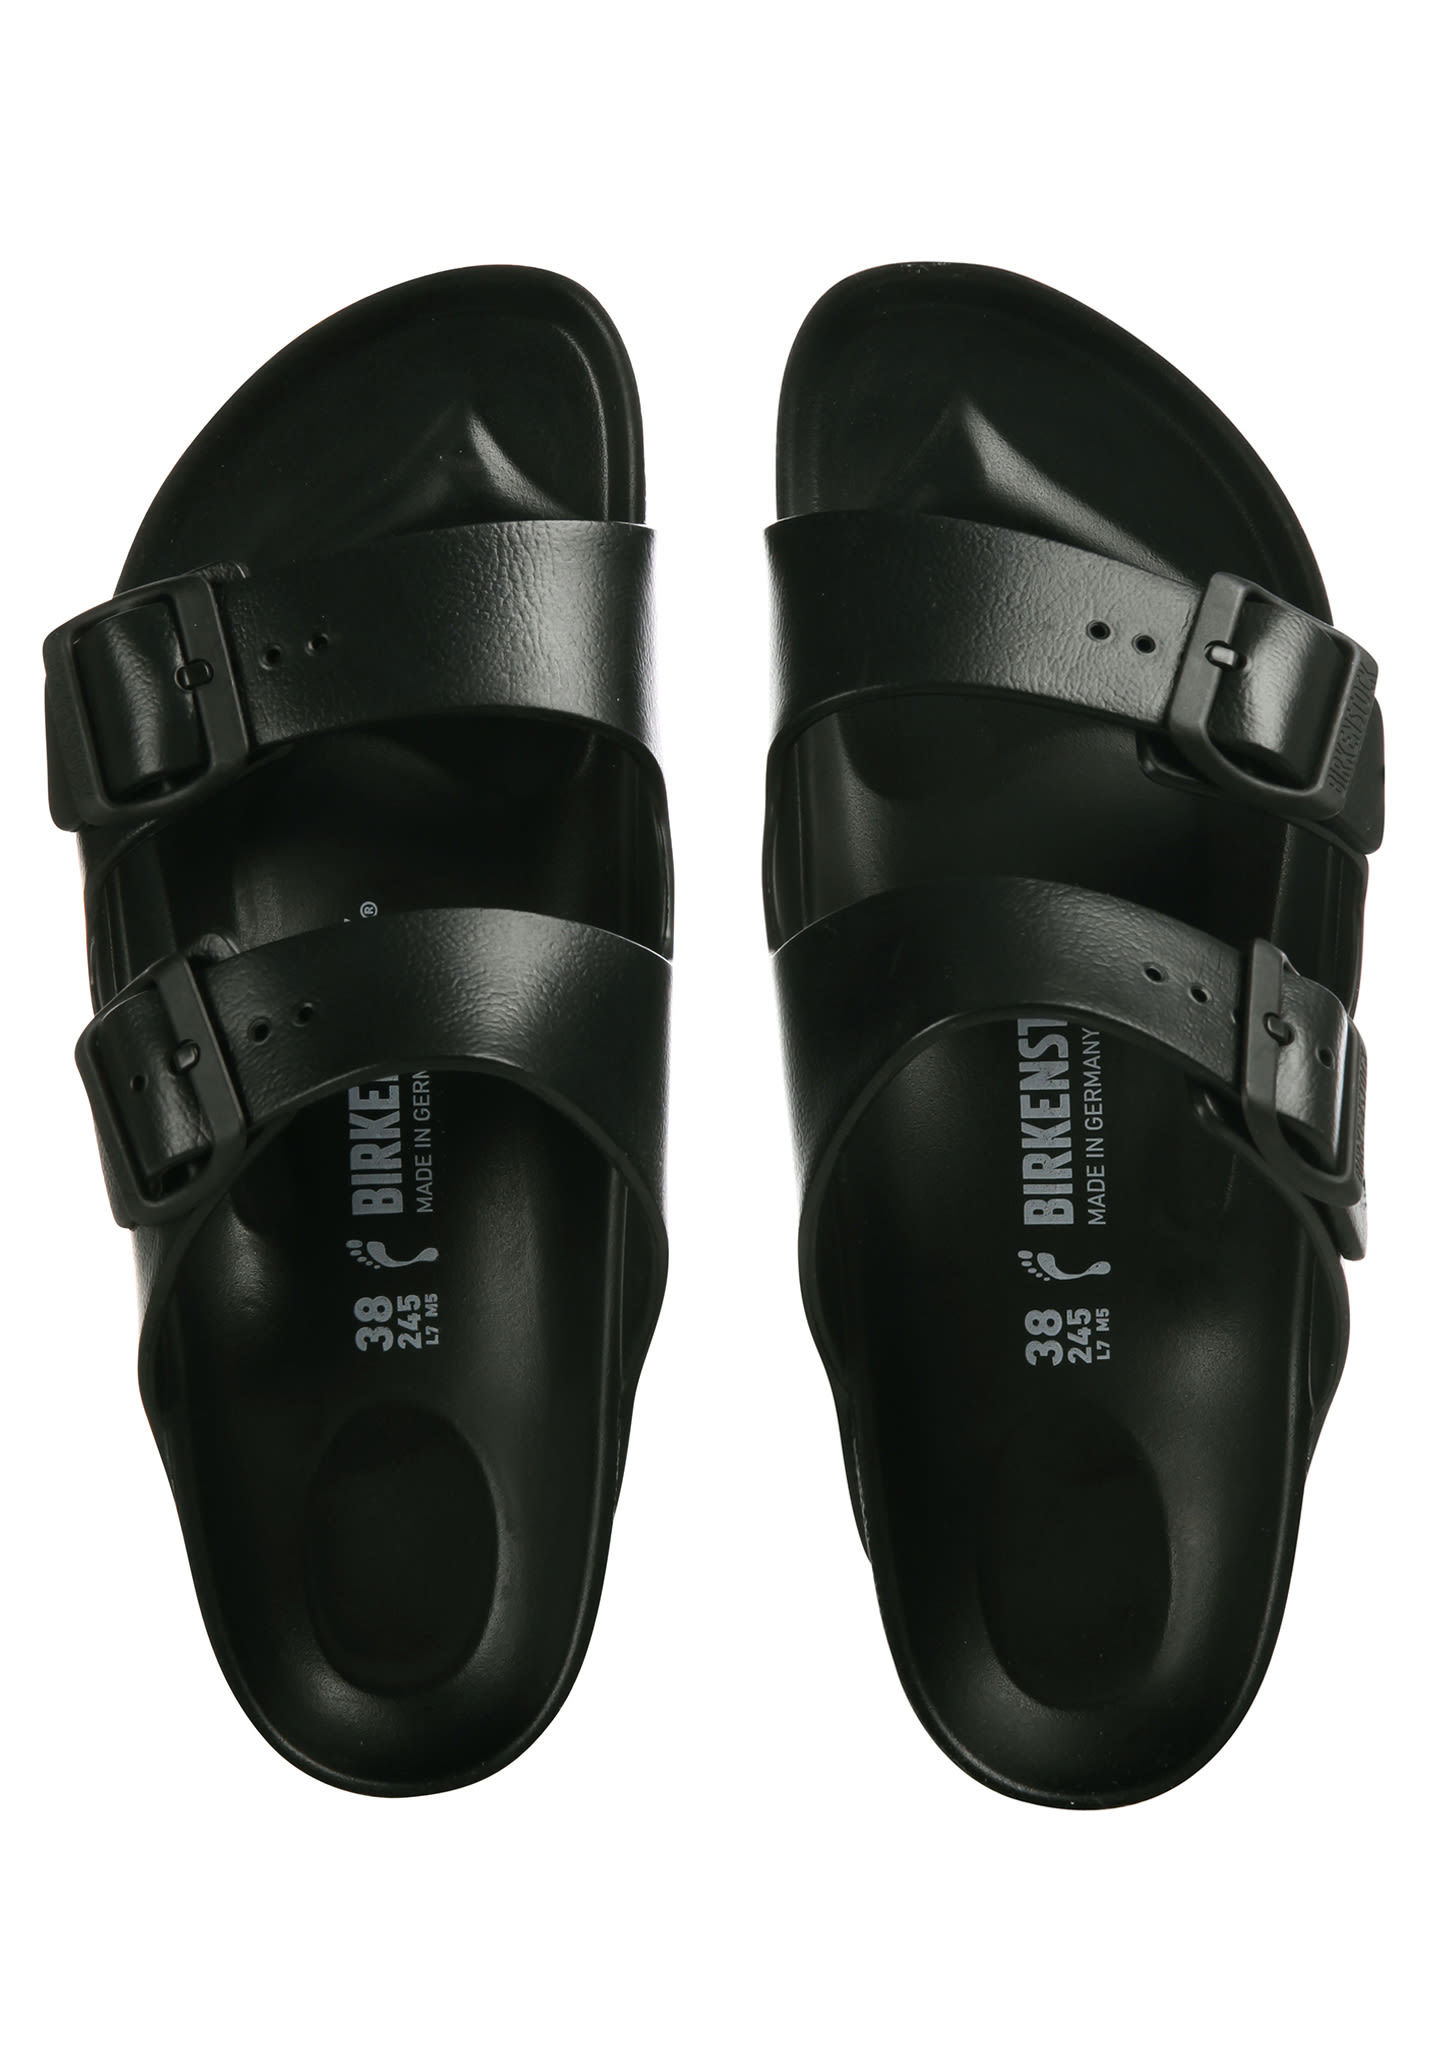 5c894eb8b9ad Birkenstock Arizona EVA - Sandals - Black - Planet Sports